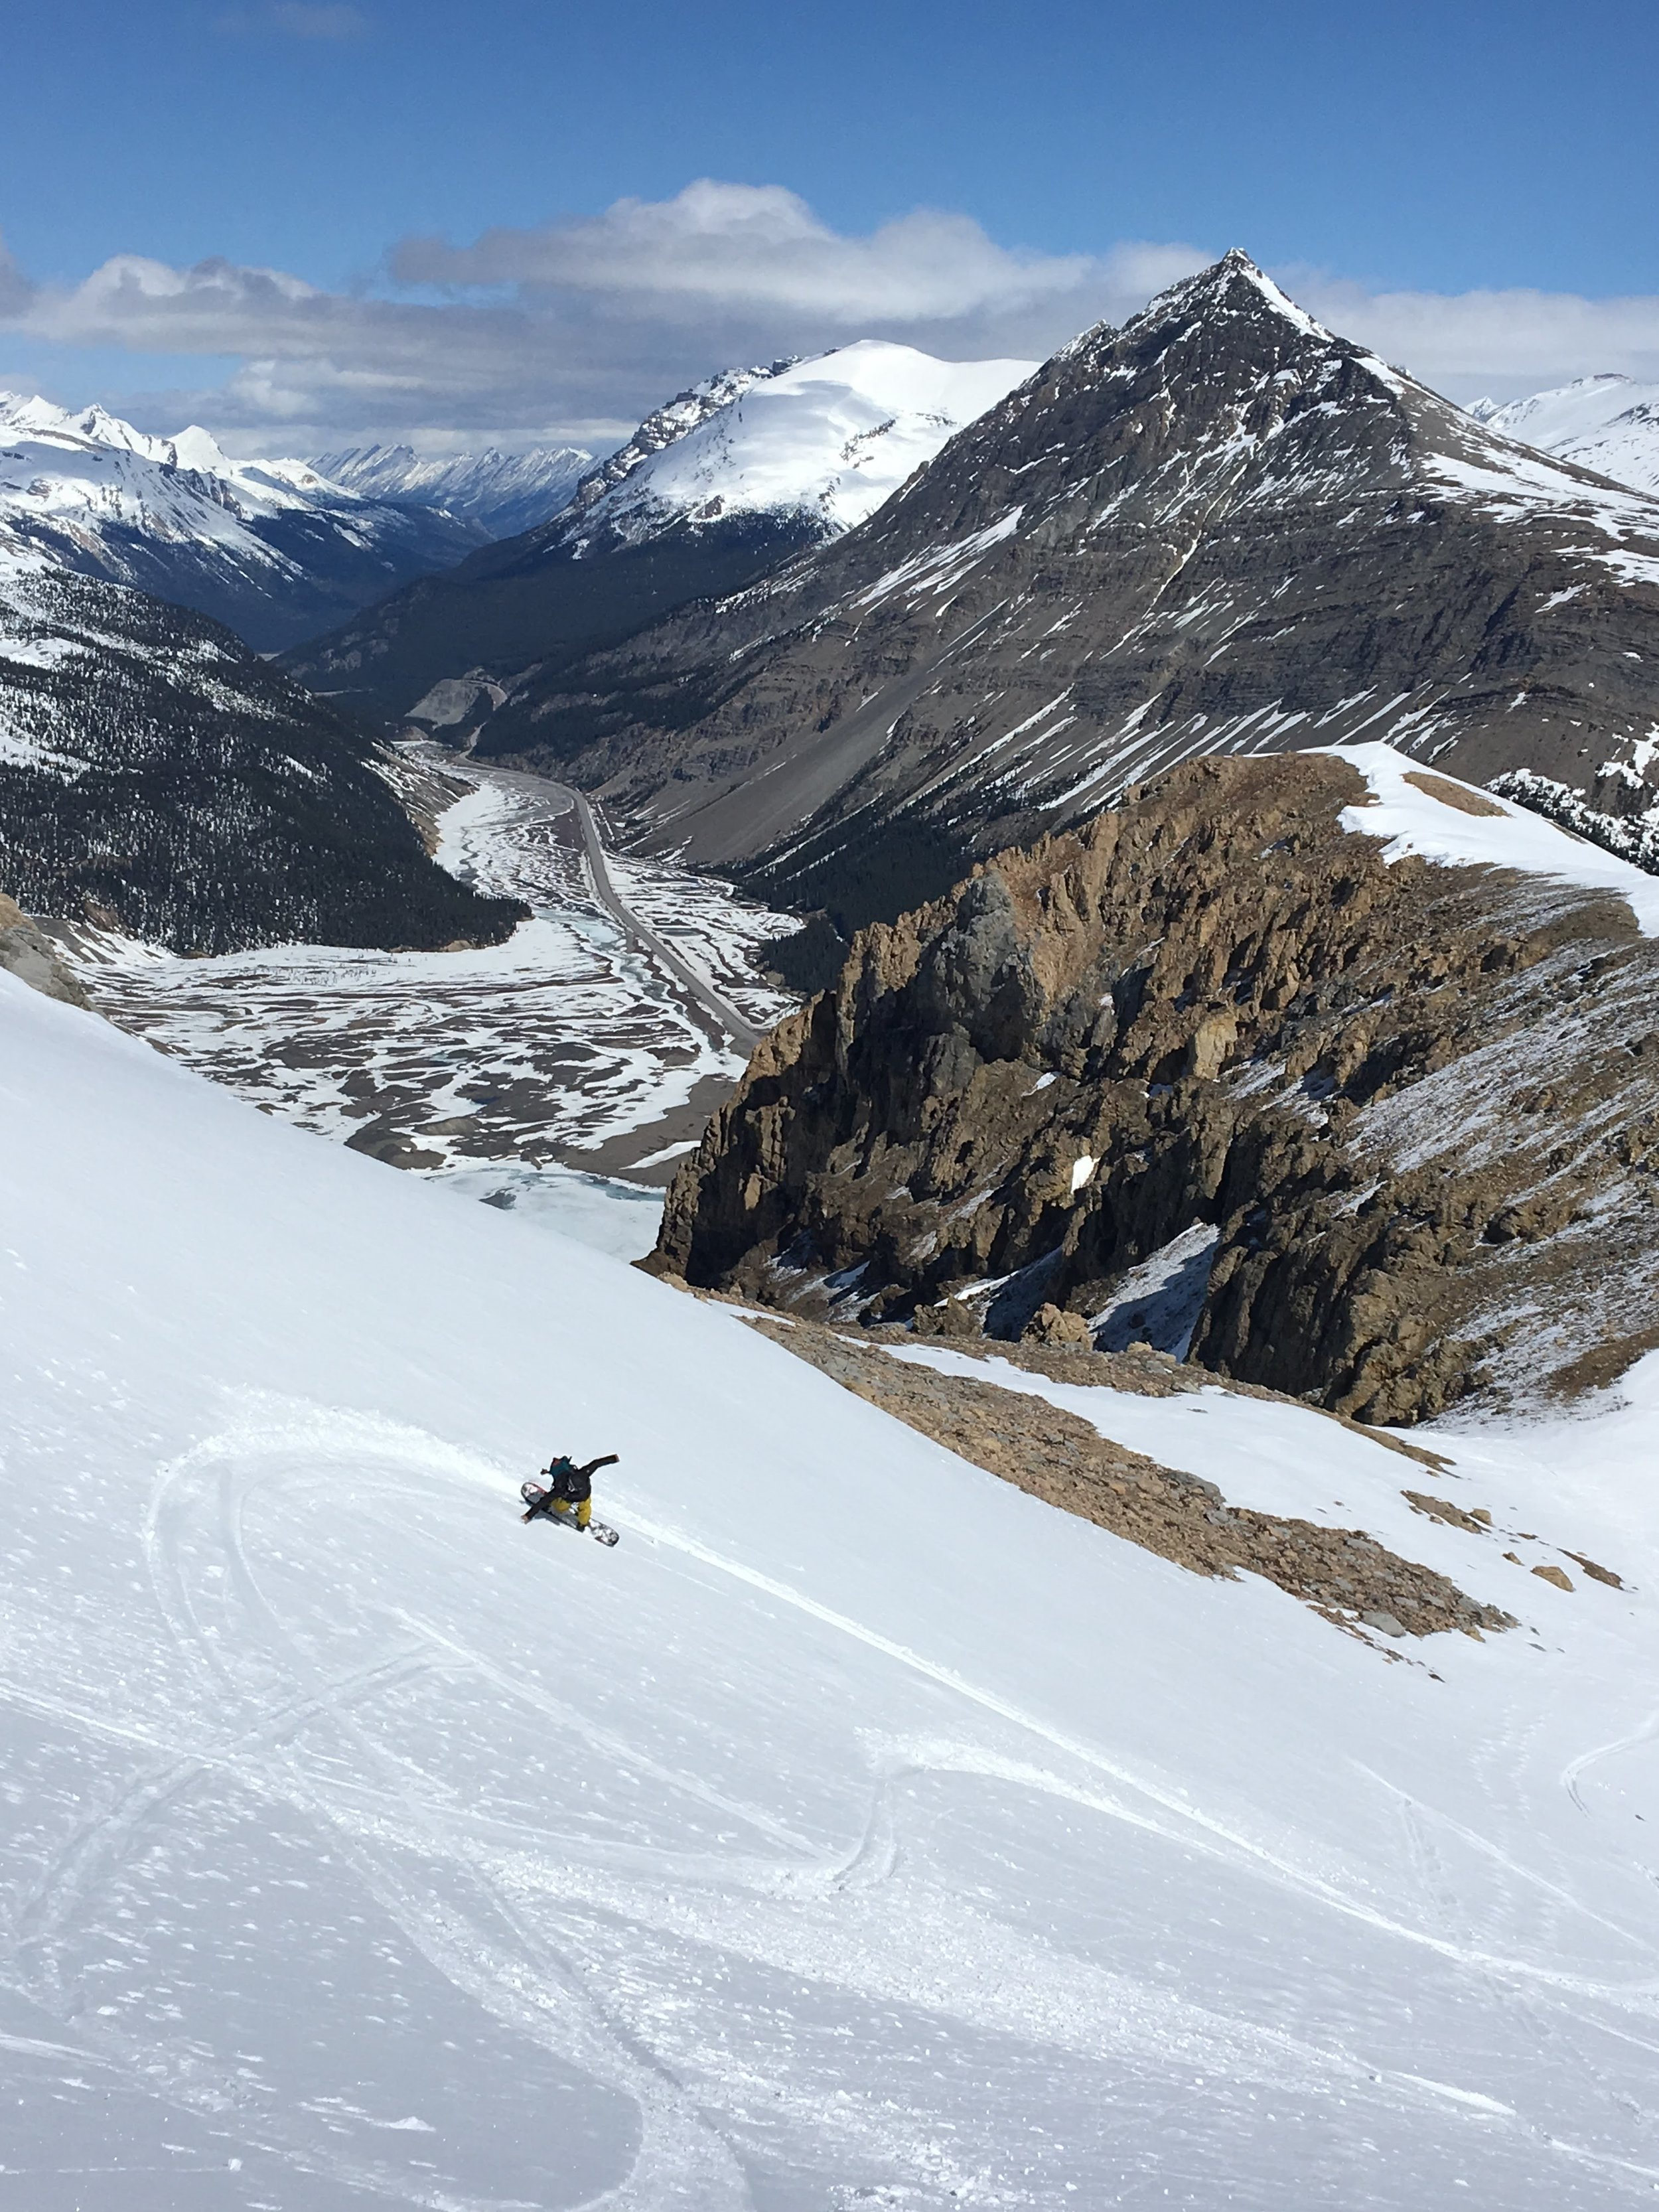 BRMP mentee laying down some nice lines on Mount Athabasca last season